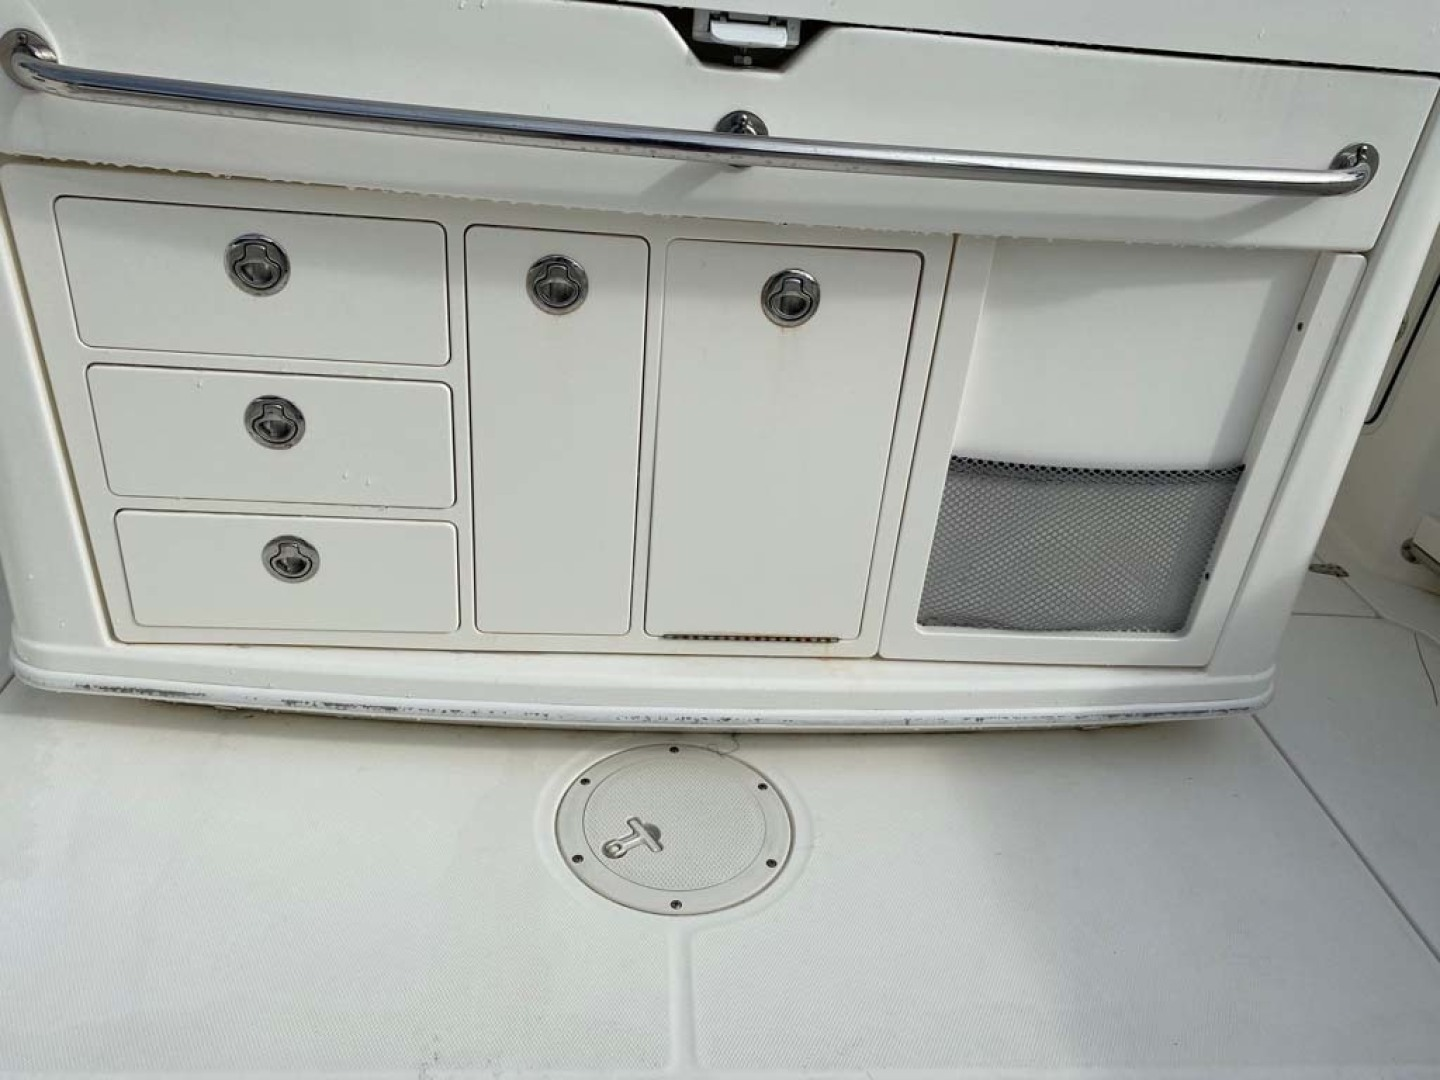 Boston Whaler-370 Outrage 2015-Reel Equity Fort Lauderdale-Florida-United States-Tackle Drawers-1302005 | Thumbnail